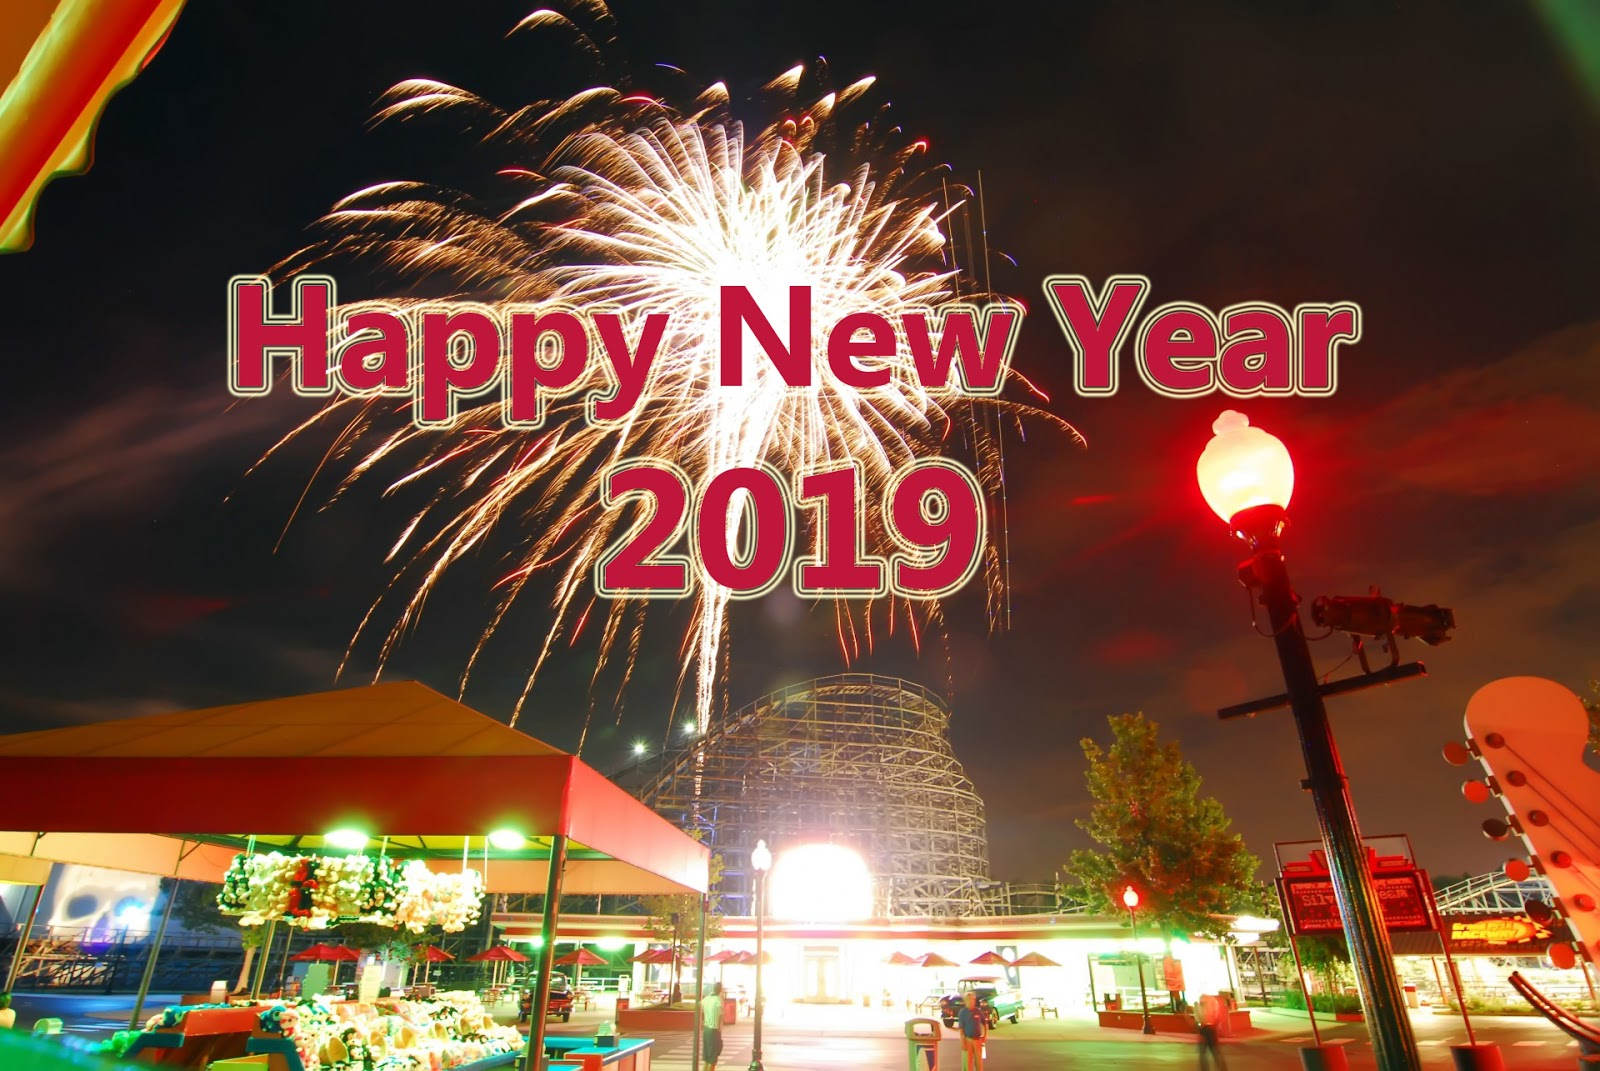 Happy New Year 2019 Wallpapers HD Images 2019 Happy New Year 2019 ...